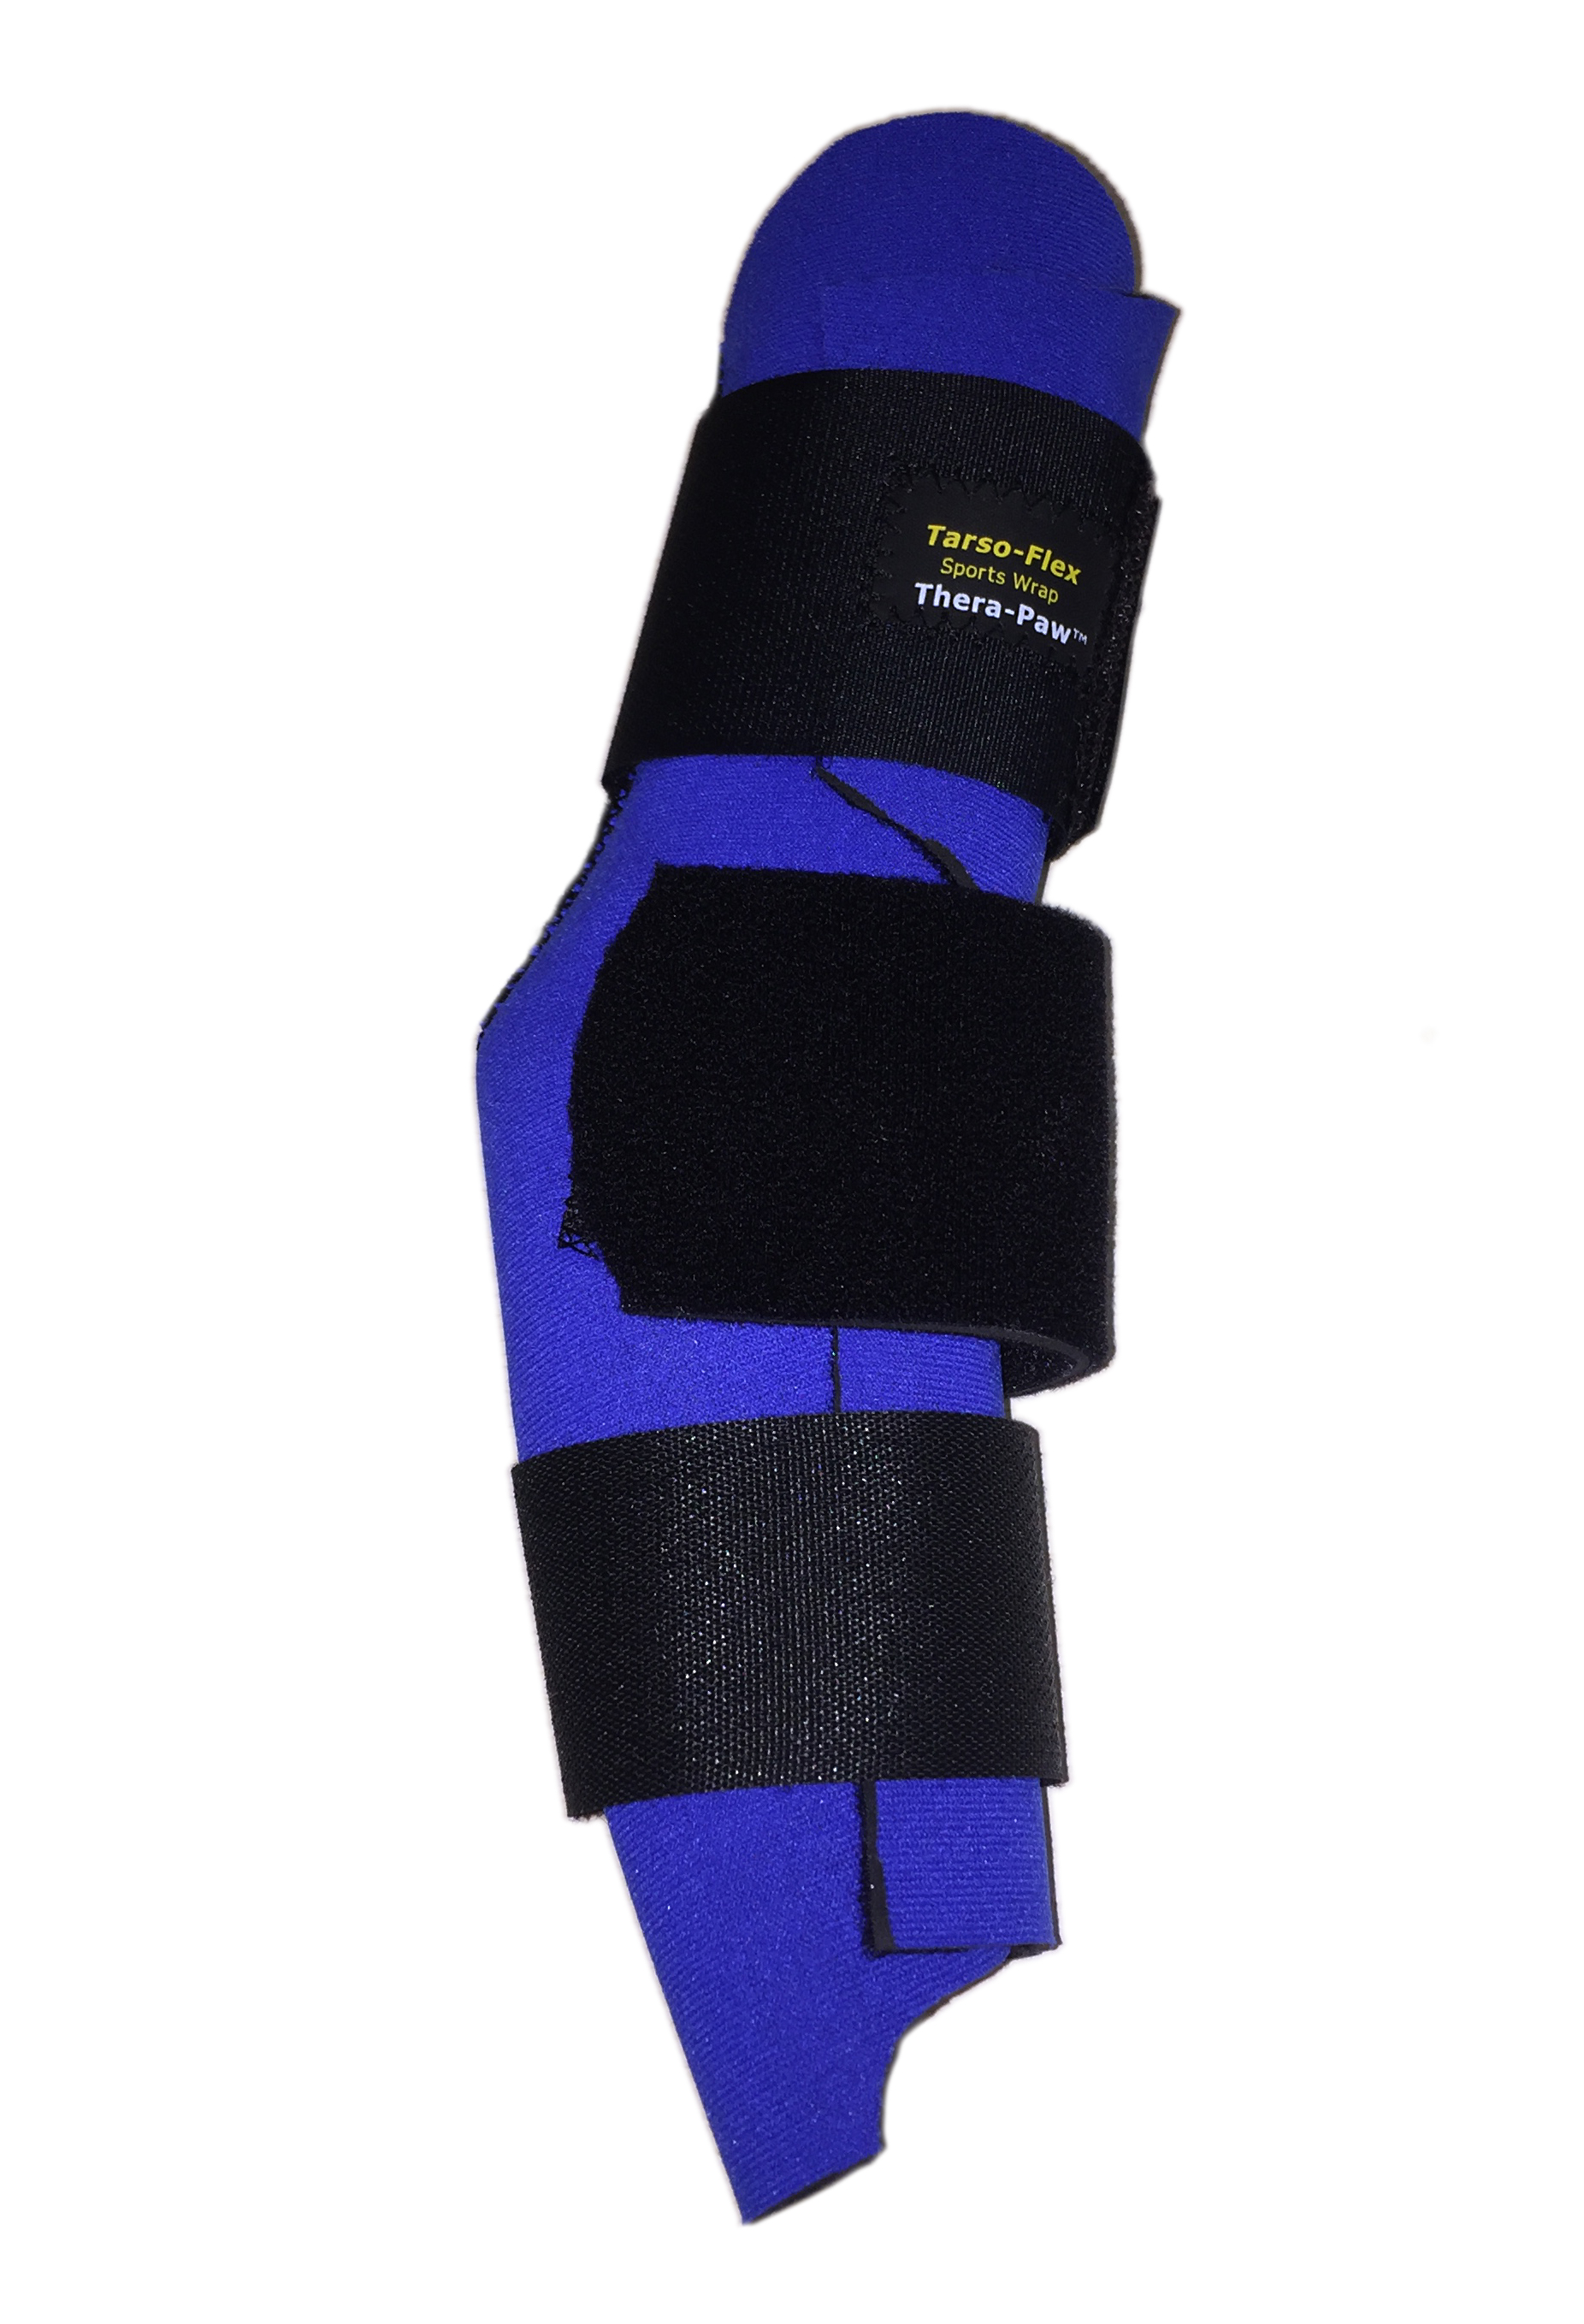 Tarso-Flex Sports Wrap